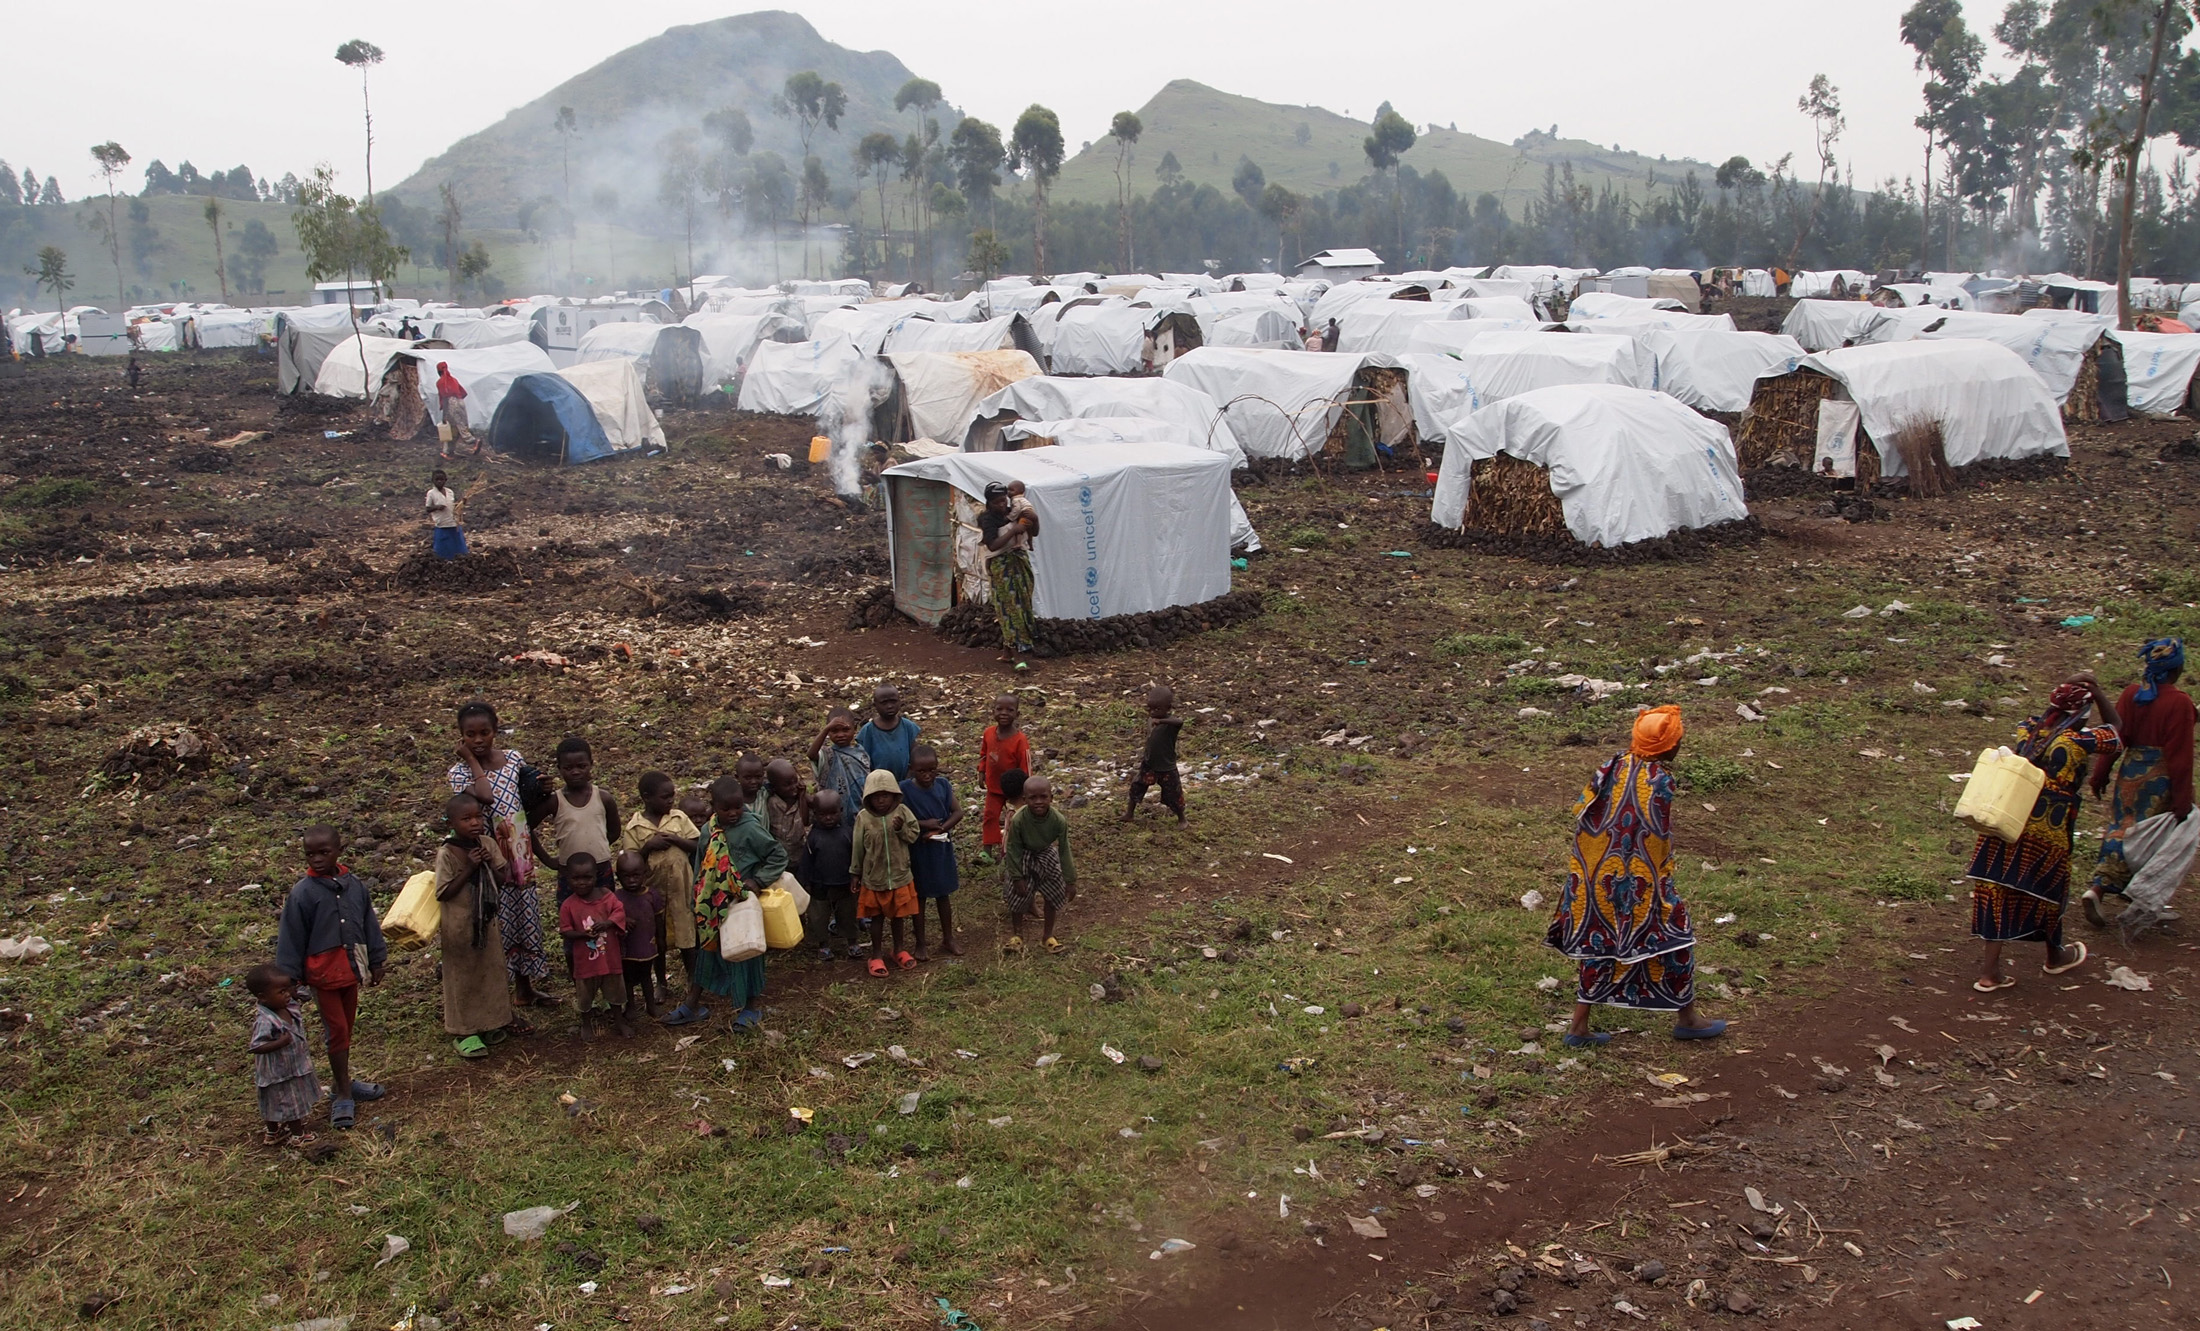 IDP camp at Kanyarucinya north of Goma